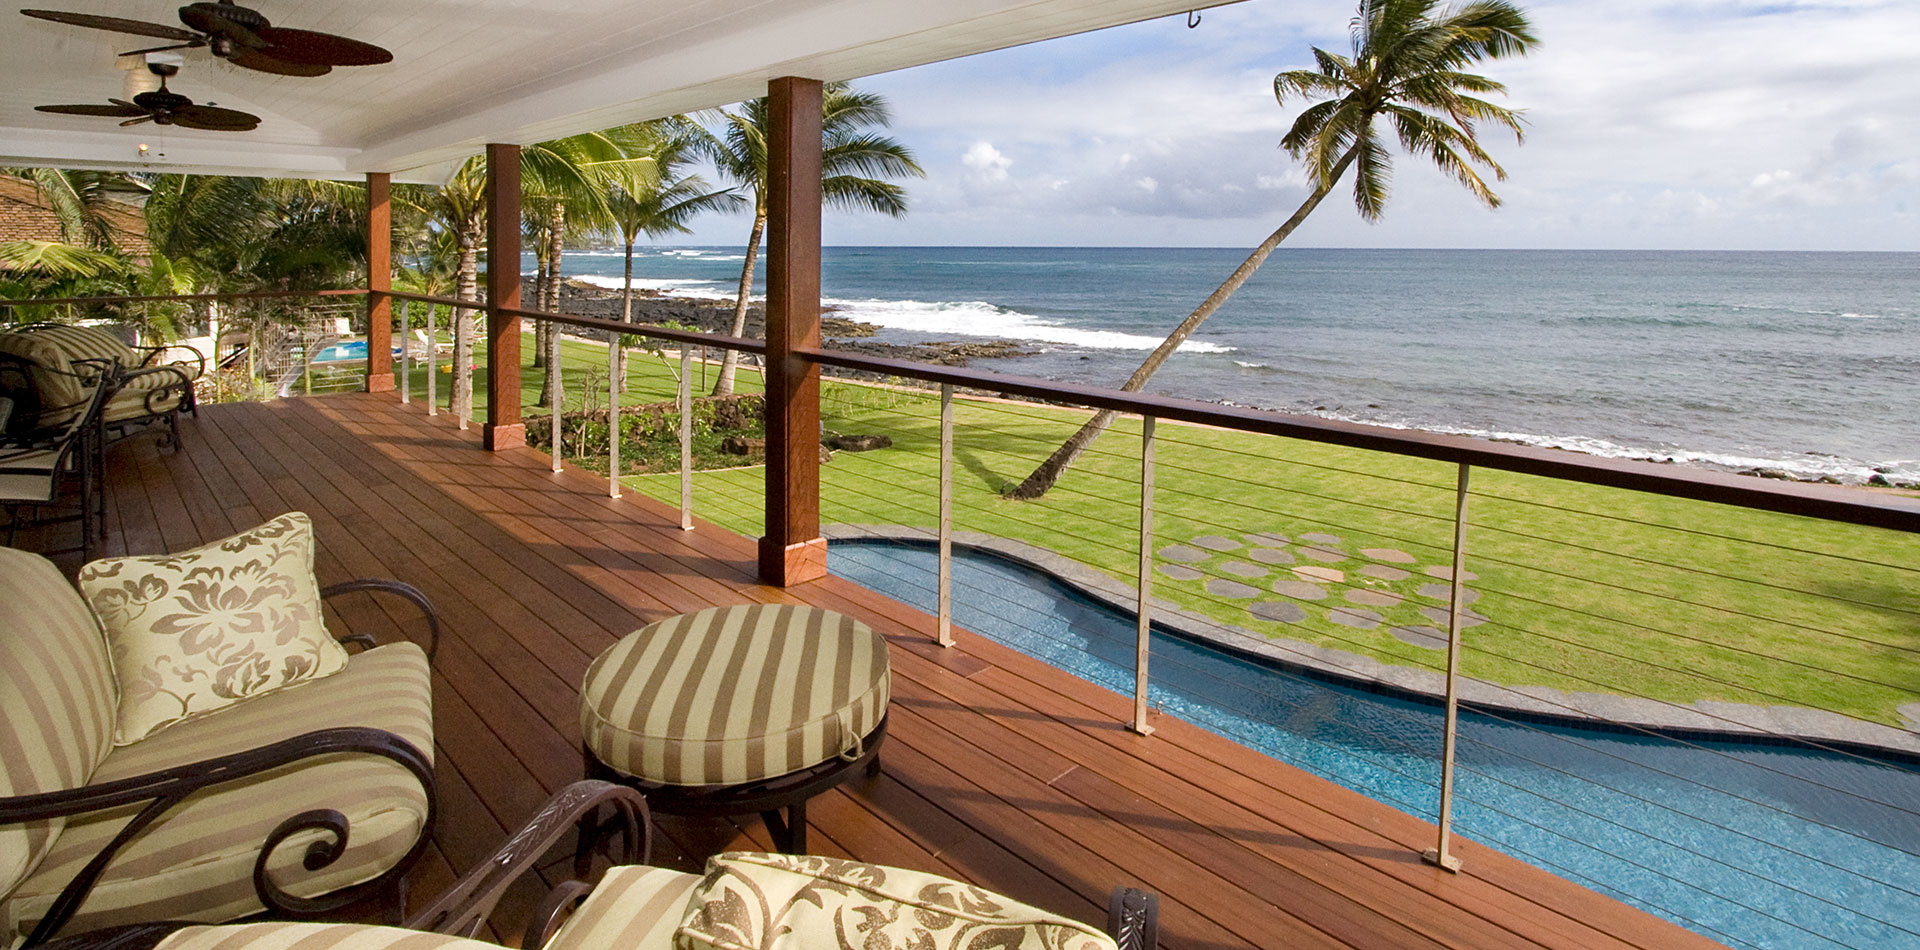 Luxury Home Remodel - Schurch Construction Kauai